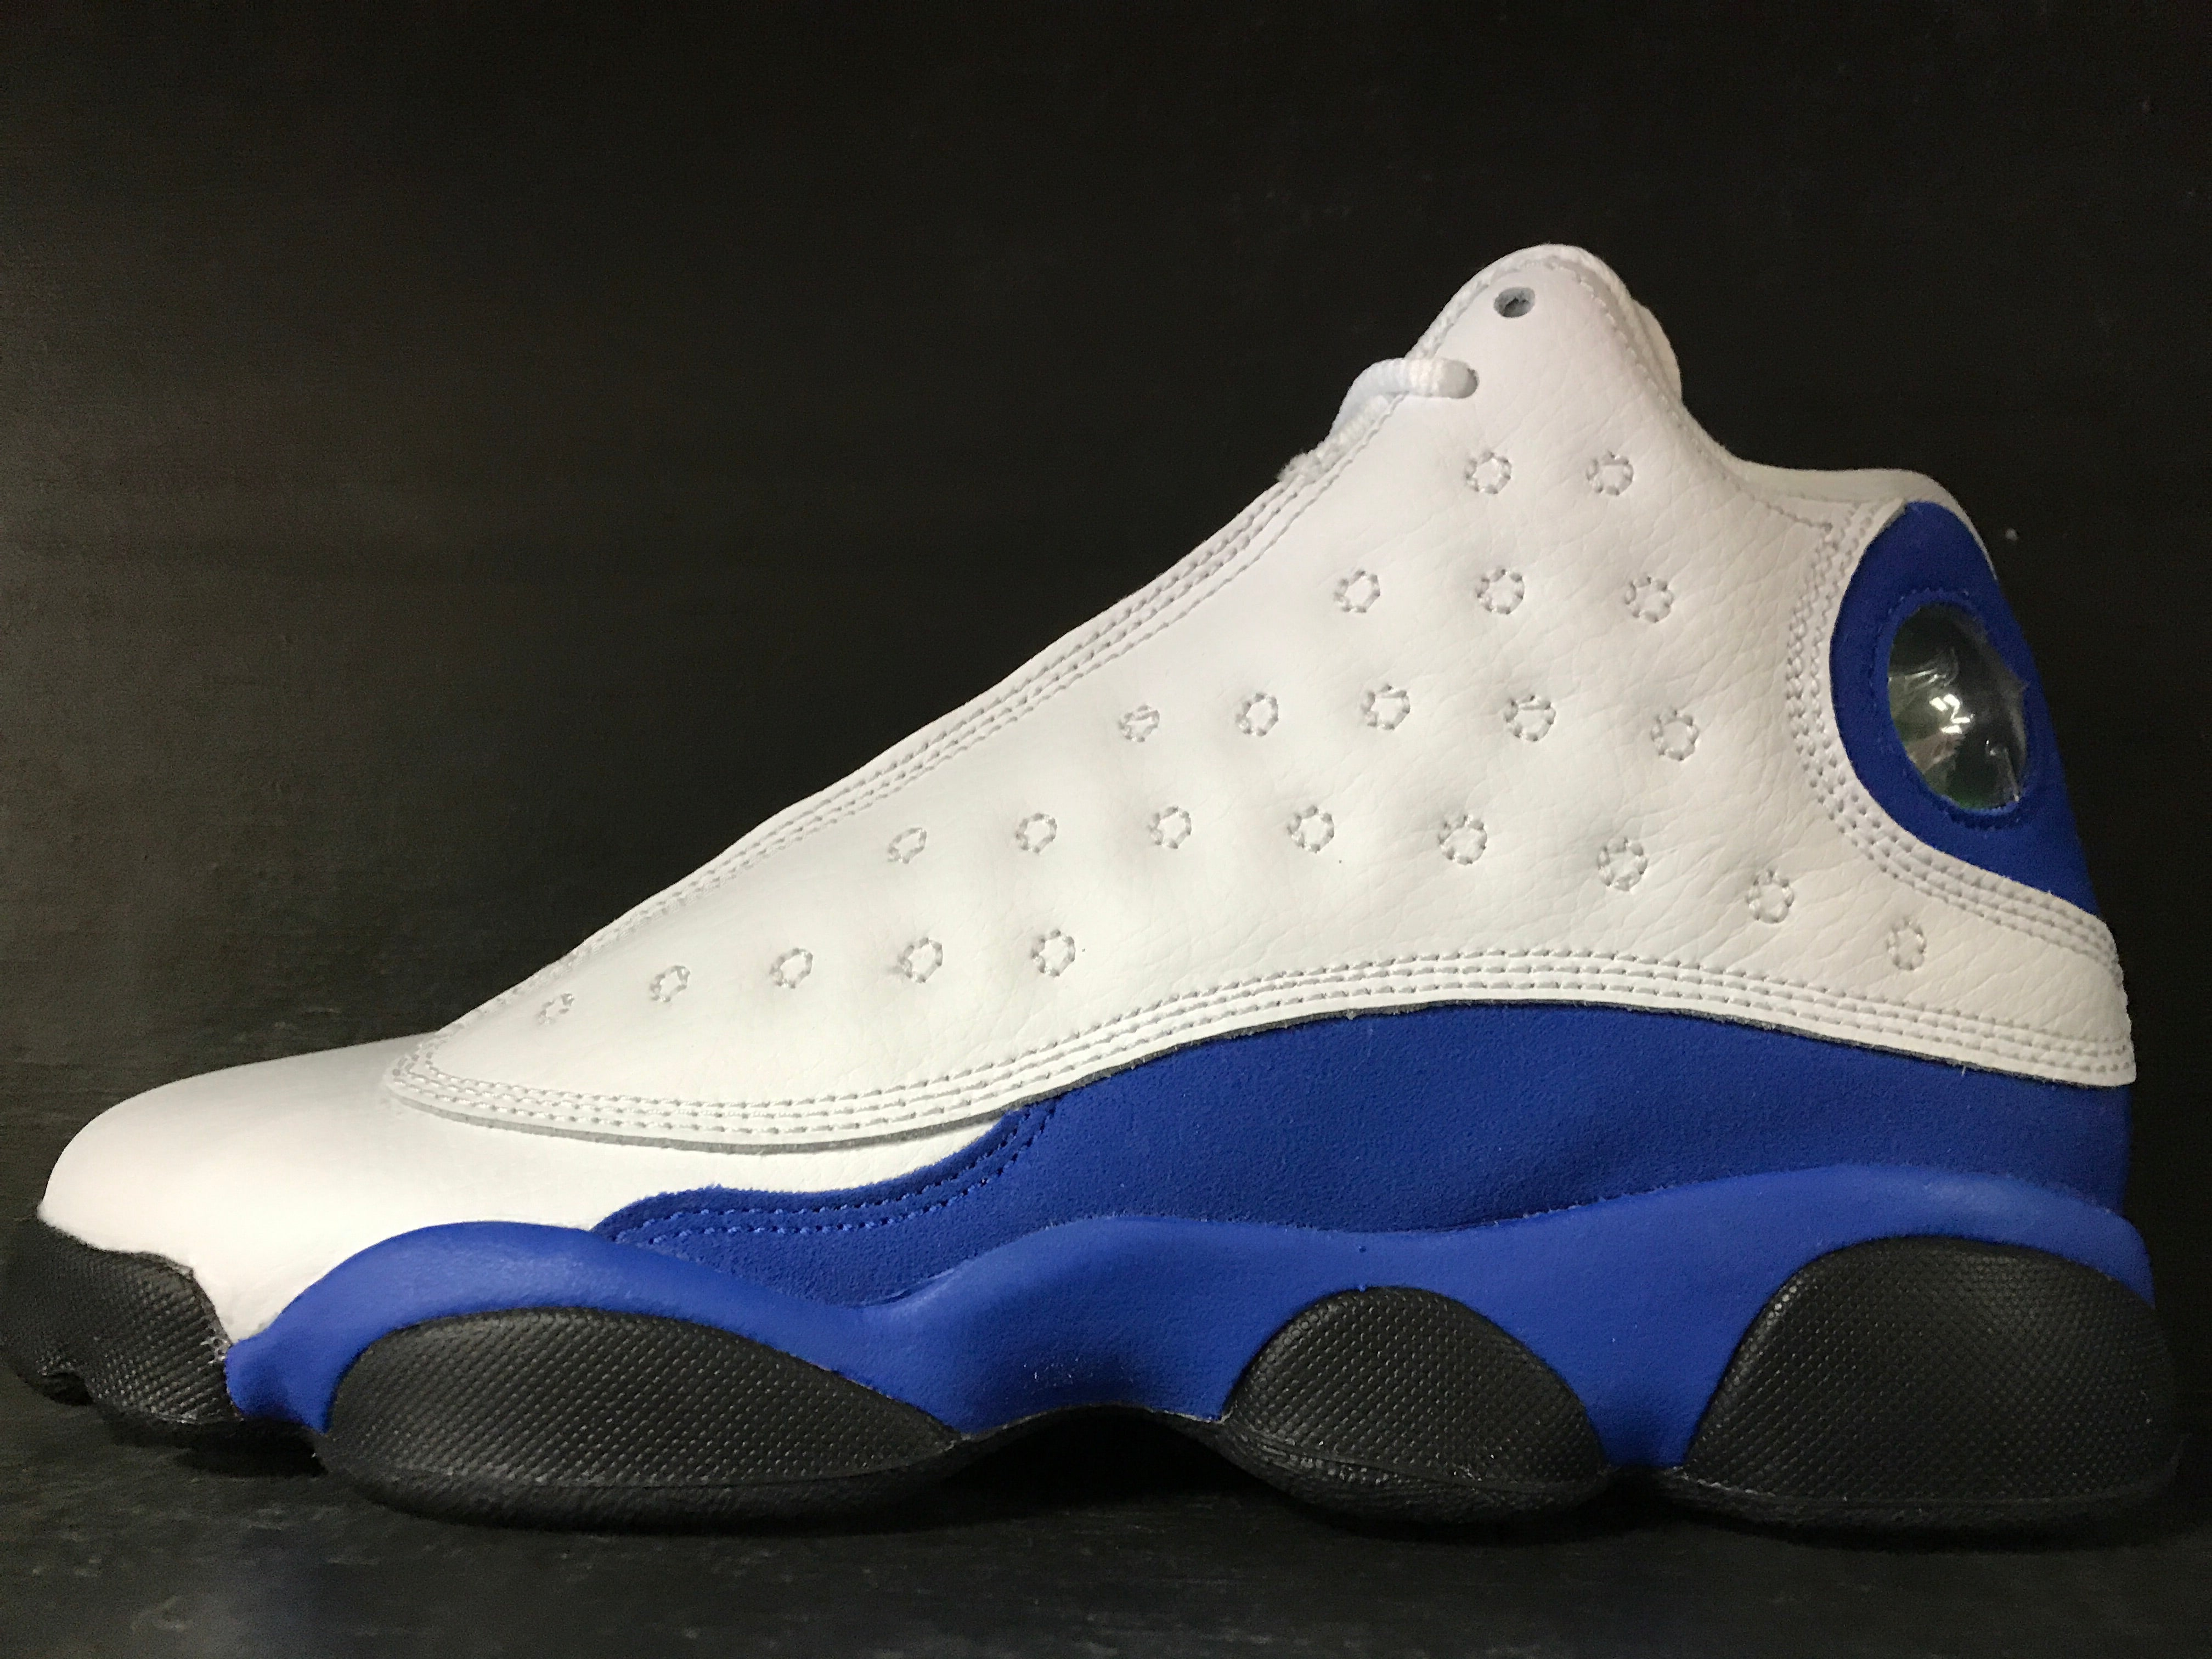 Air Jordan 13 Retro BG 'Game Royal'